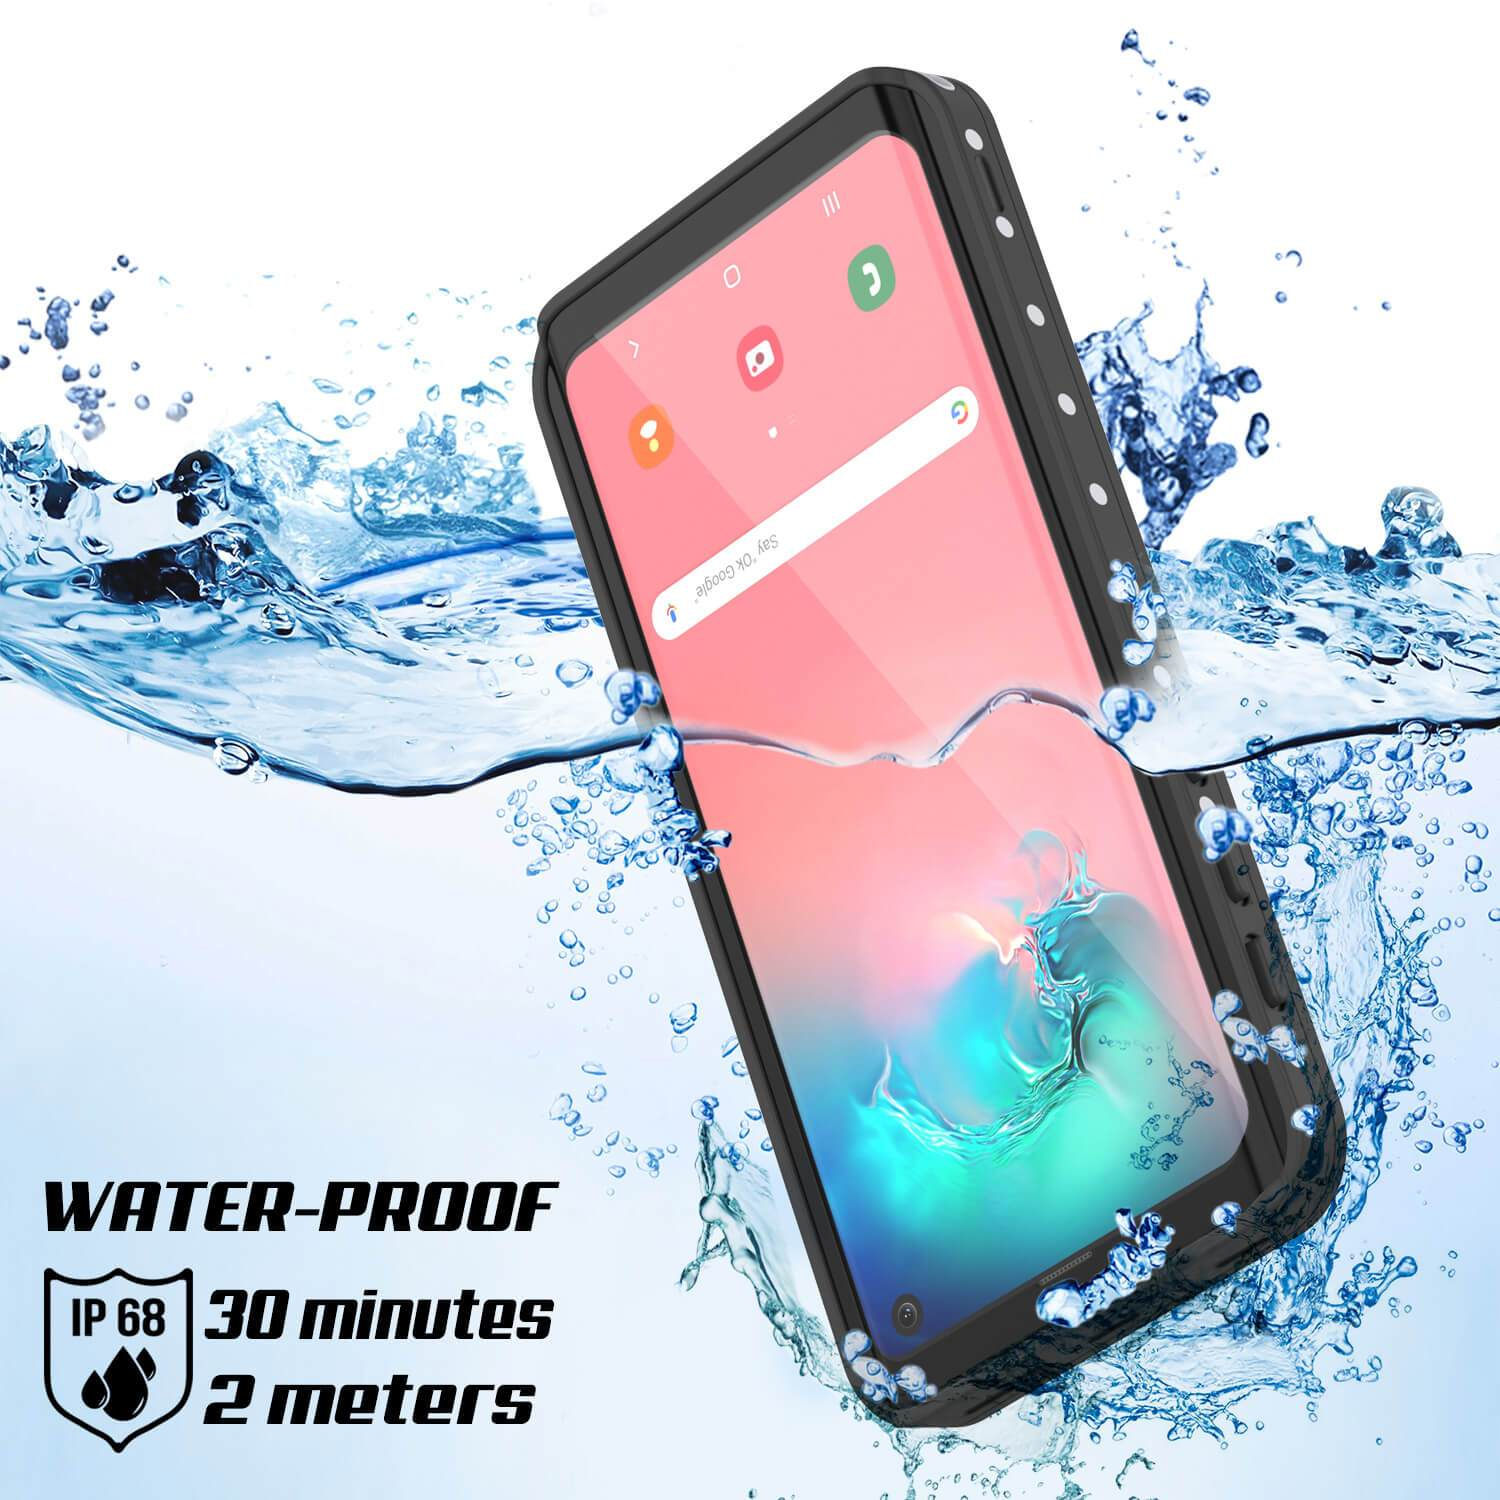 Galaxy A10e Waterproof Case, Punkcase StudStar White Thin 6.6ft Underwater IP68 Shock/Snow Proof